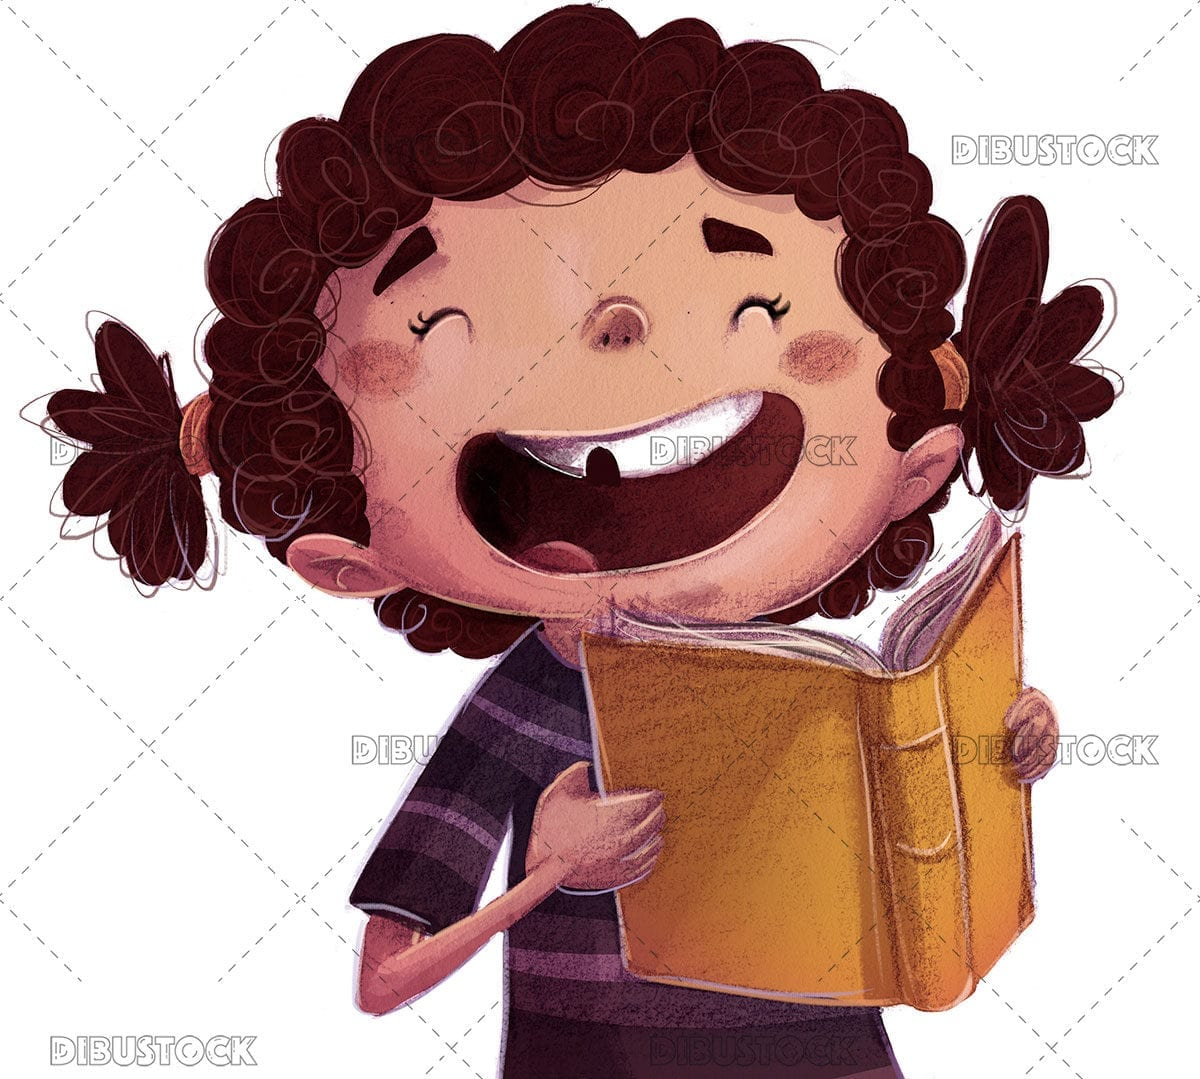 Little girl with pigtails reading while smiling